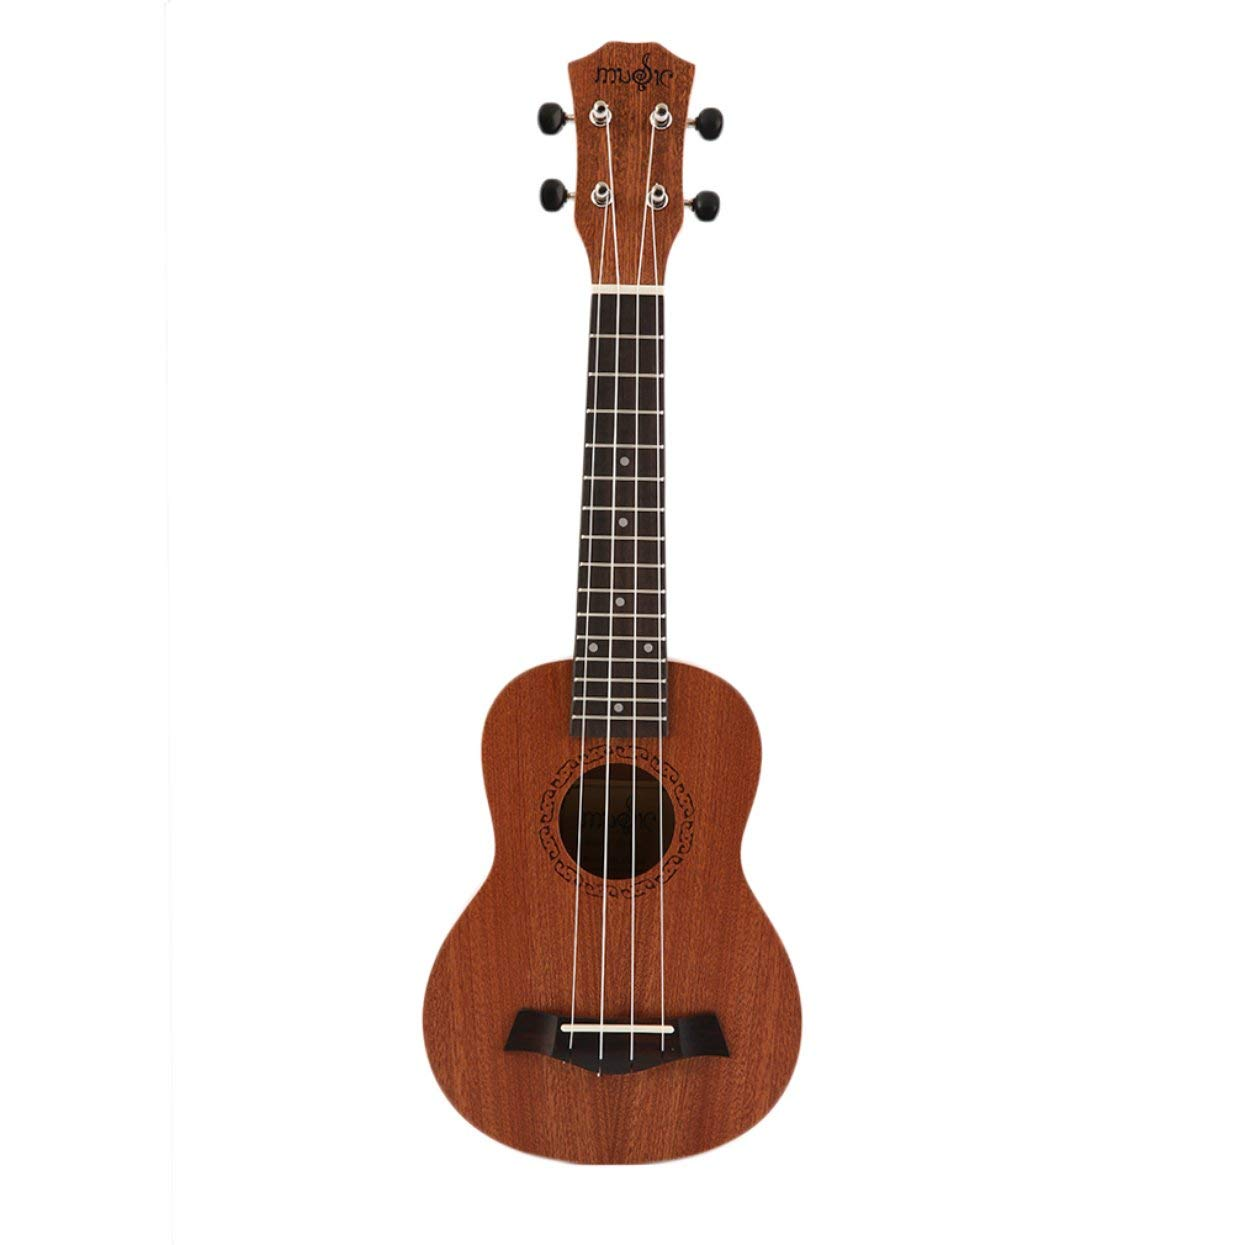 LoveOlvido 21 Inch Soprano Acoustic Electric Ukulele Guitar 4 Strings Ukelele Guitarra Handcraft Wood White Guitarist Mahogany Plug-in Hot